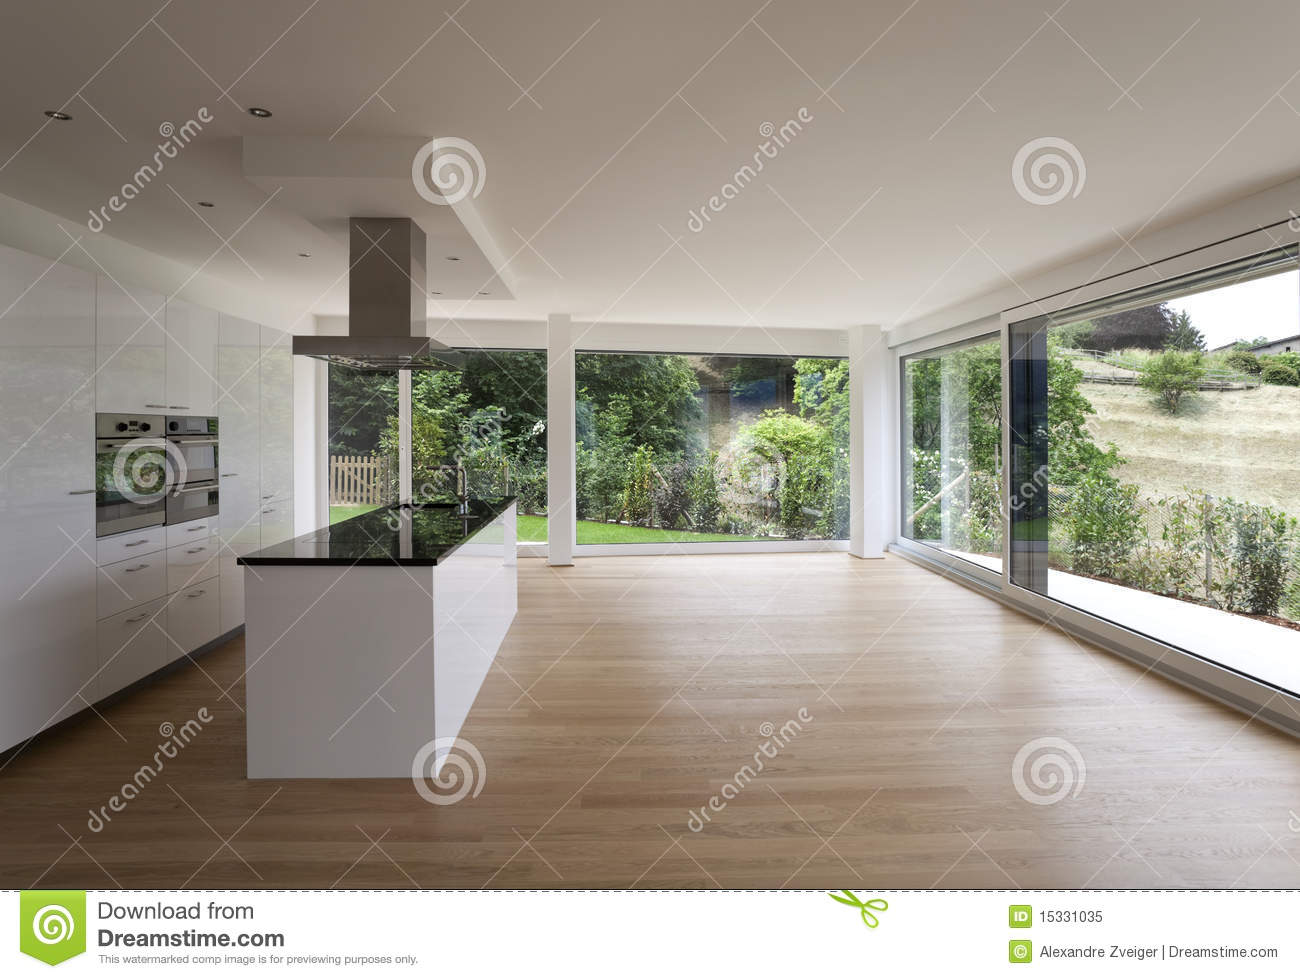 Bel int rieur d 39 une maison moderne photo libre de droits image 15331035 for Interieur de luxe maison